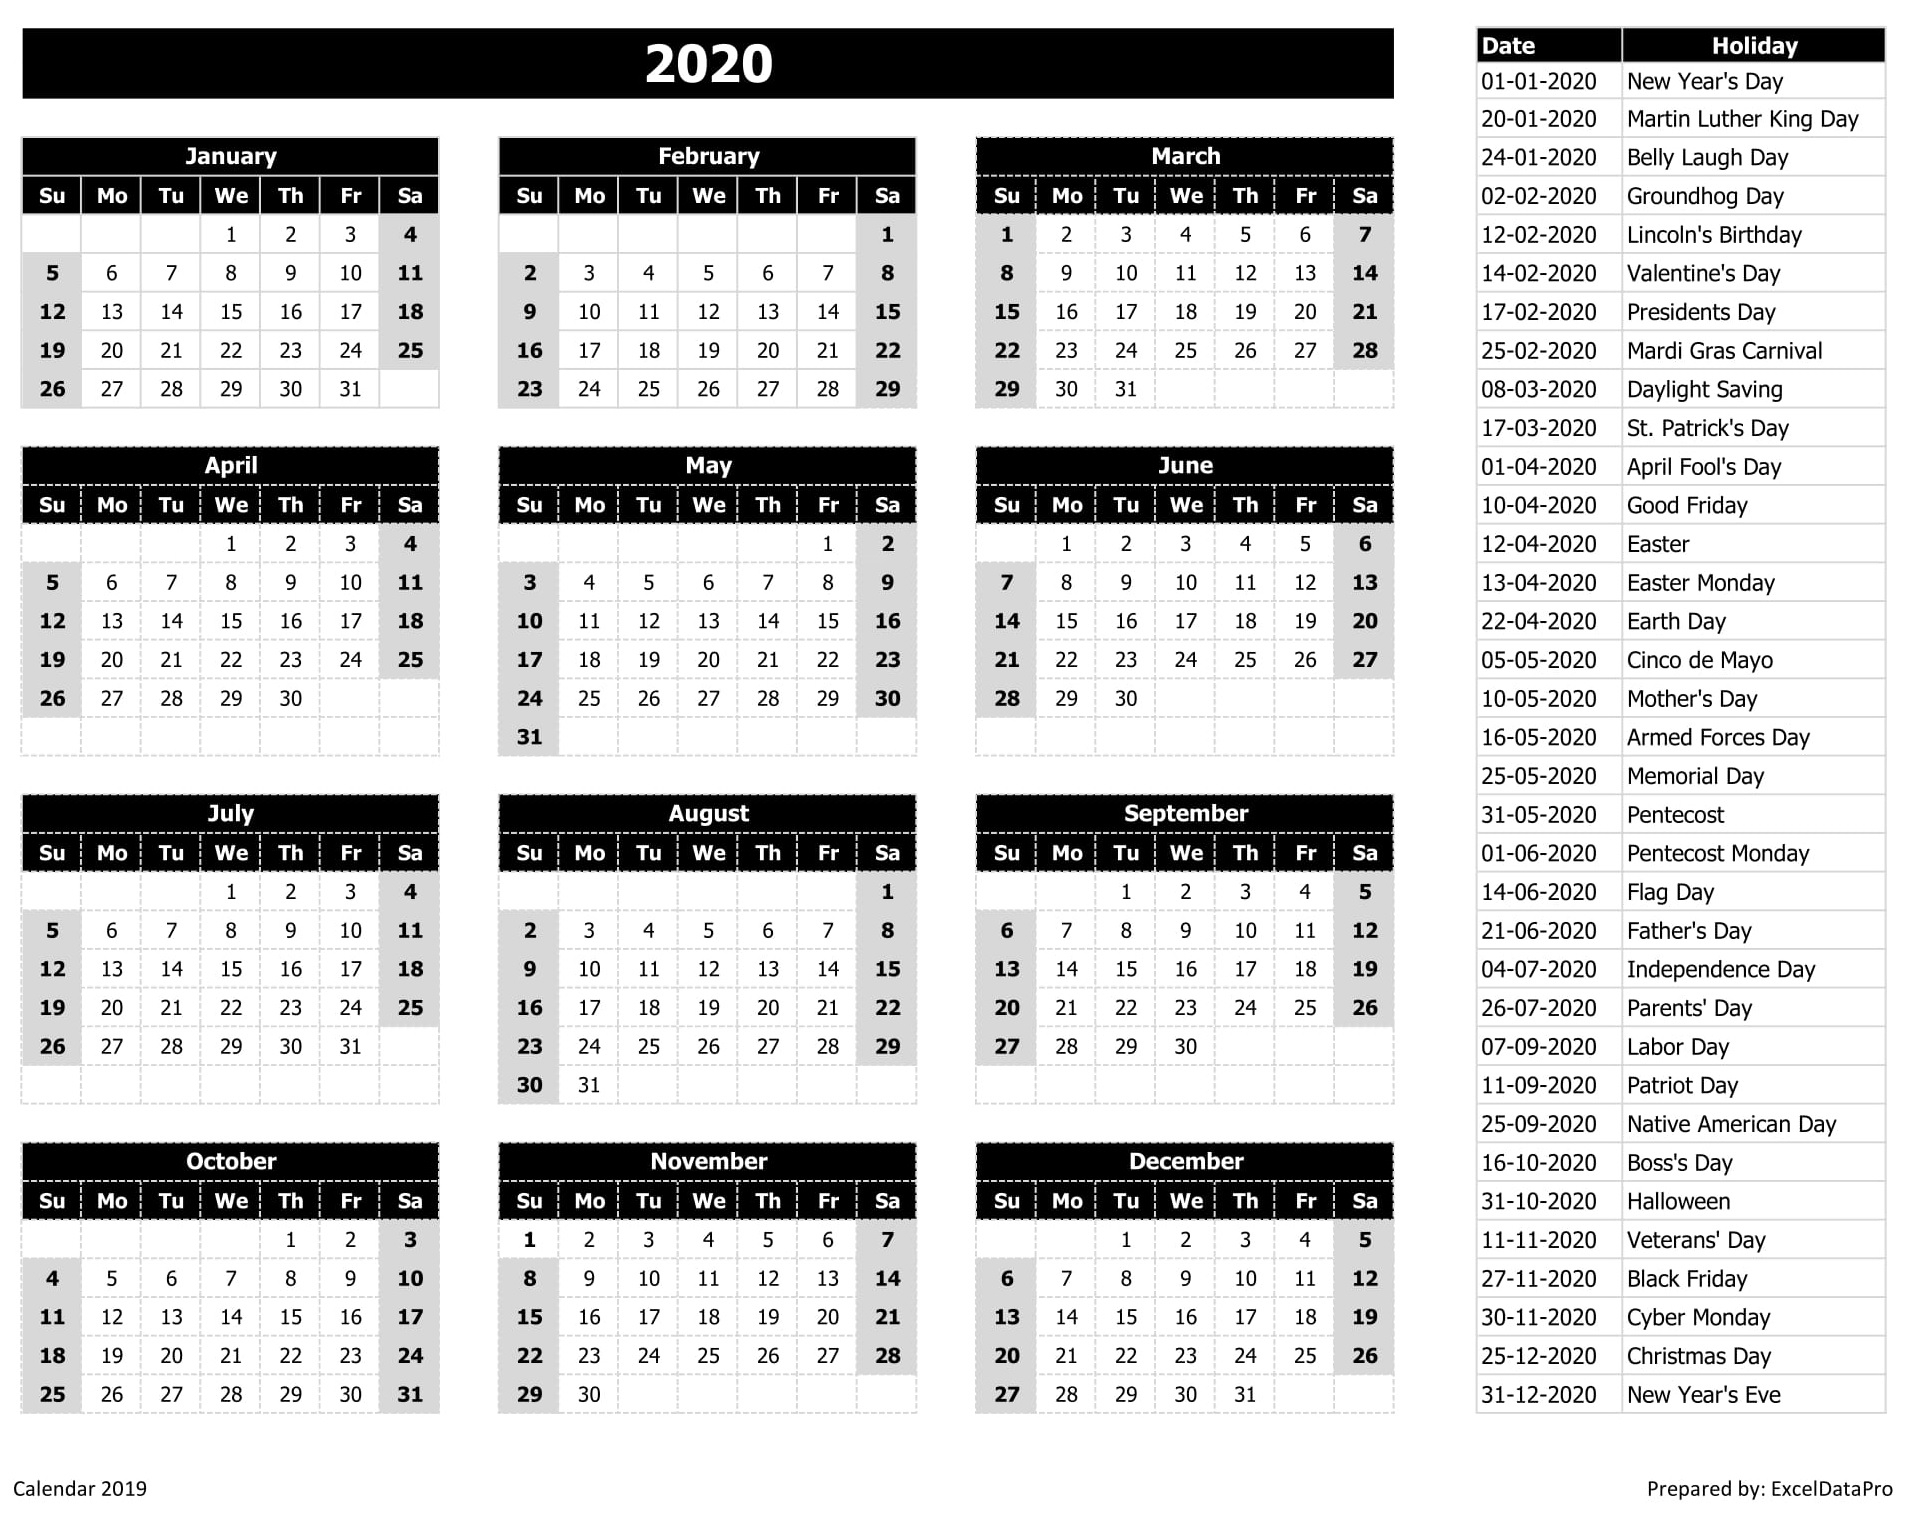 2020 Calendar Excel Templates, Printable Pdfs & Images in La Fitness Payroll Calendar 2020